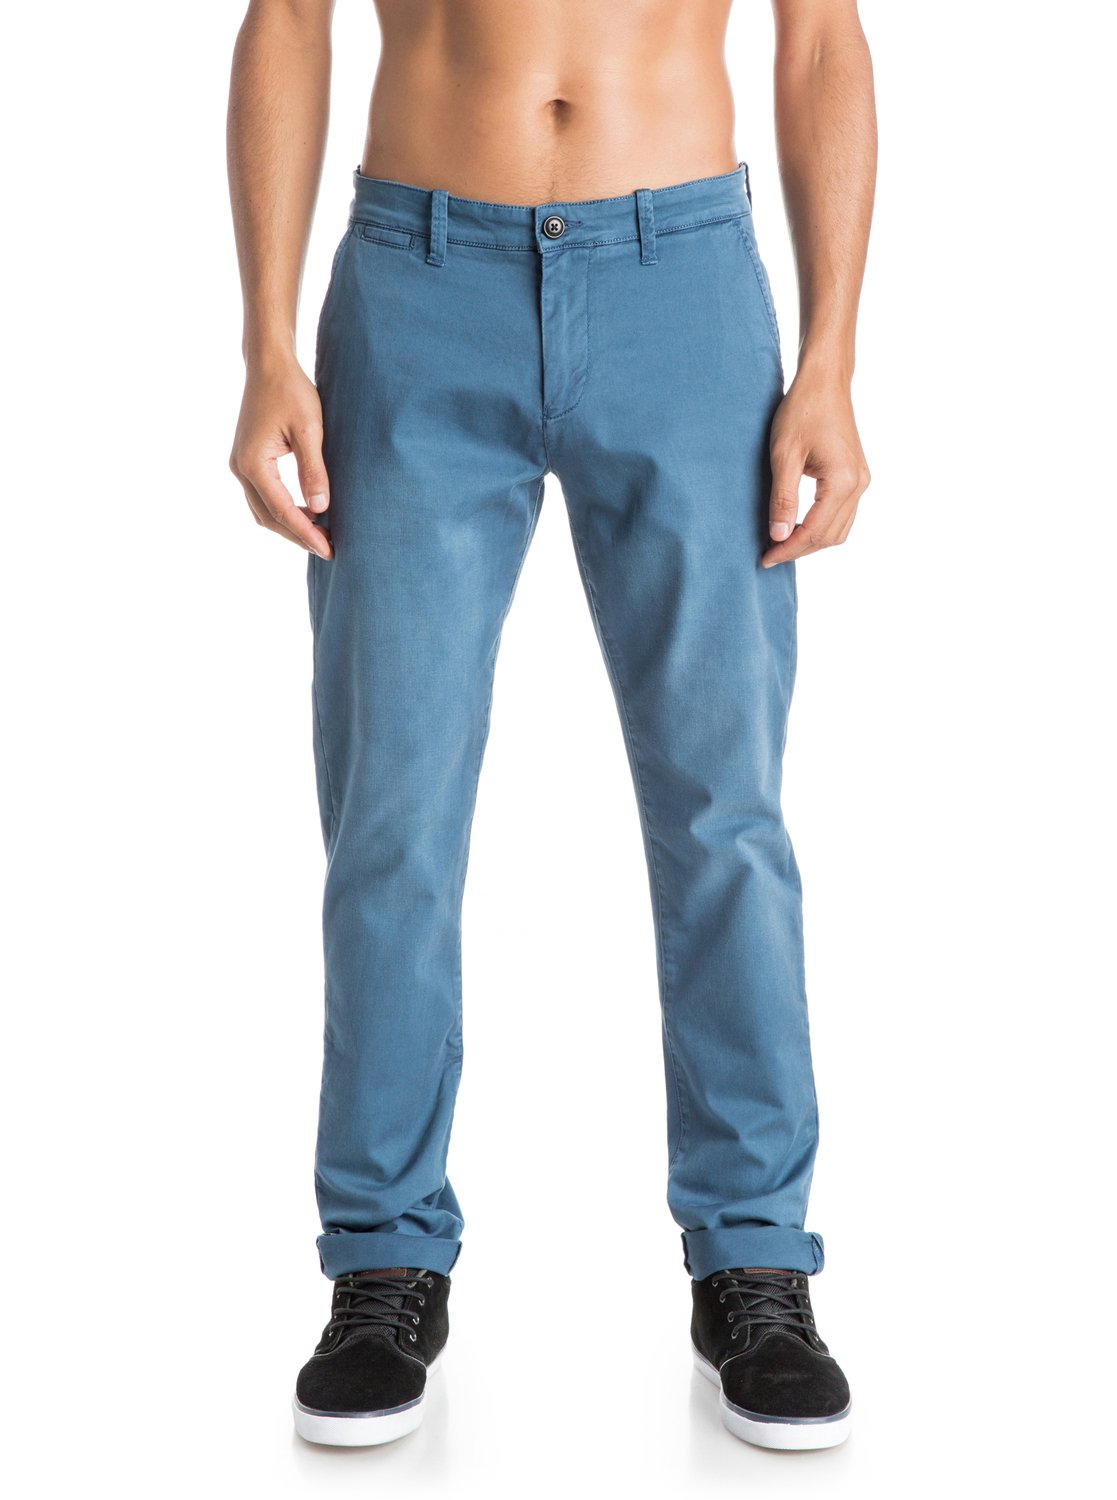 These Dockers Men's Clean Slim Tapered Fit Khaki Stretch Pants come in some really fun styles and feature a Stretch for Performance, All Motion Comfort Waistband and No Wrinkles technology.